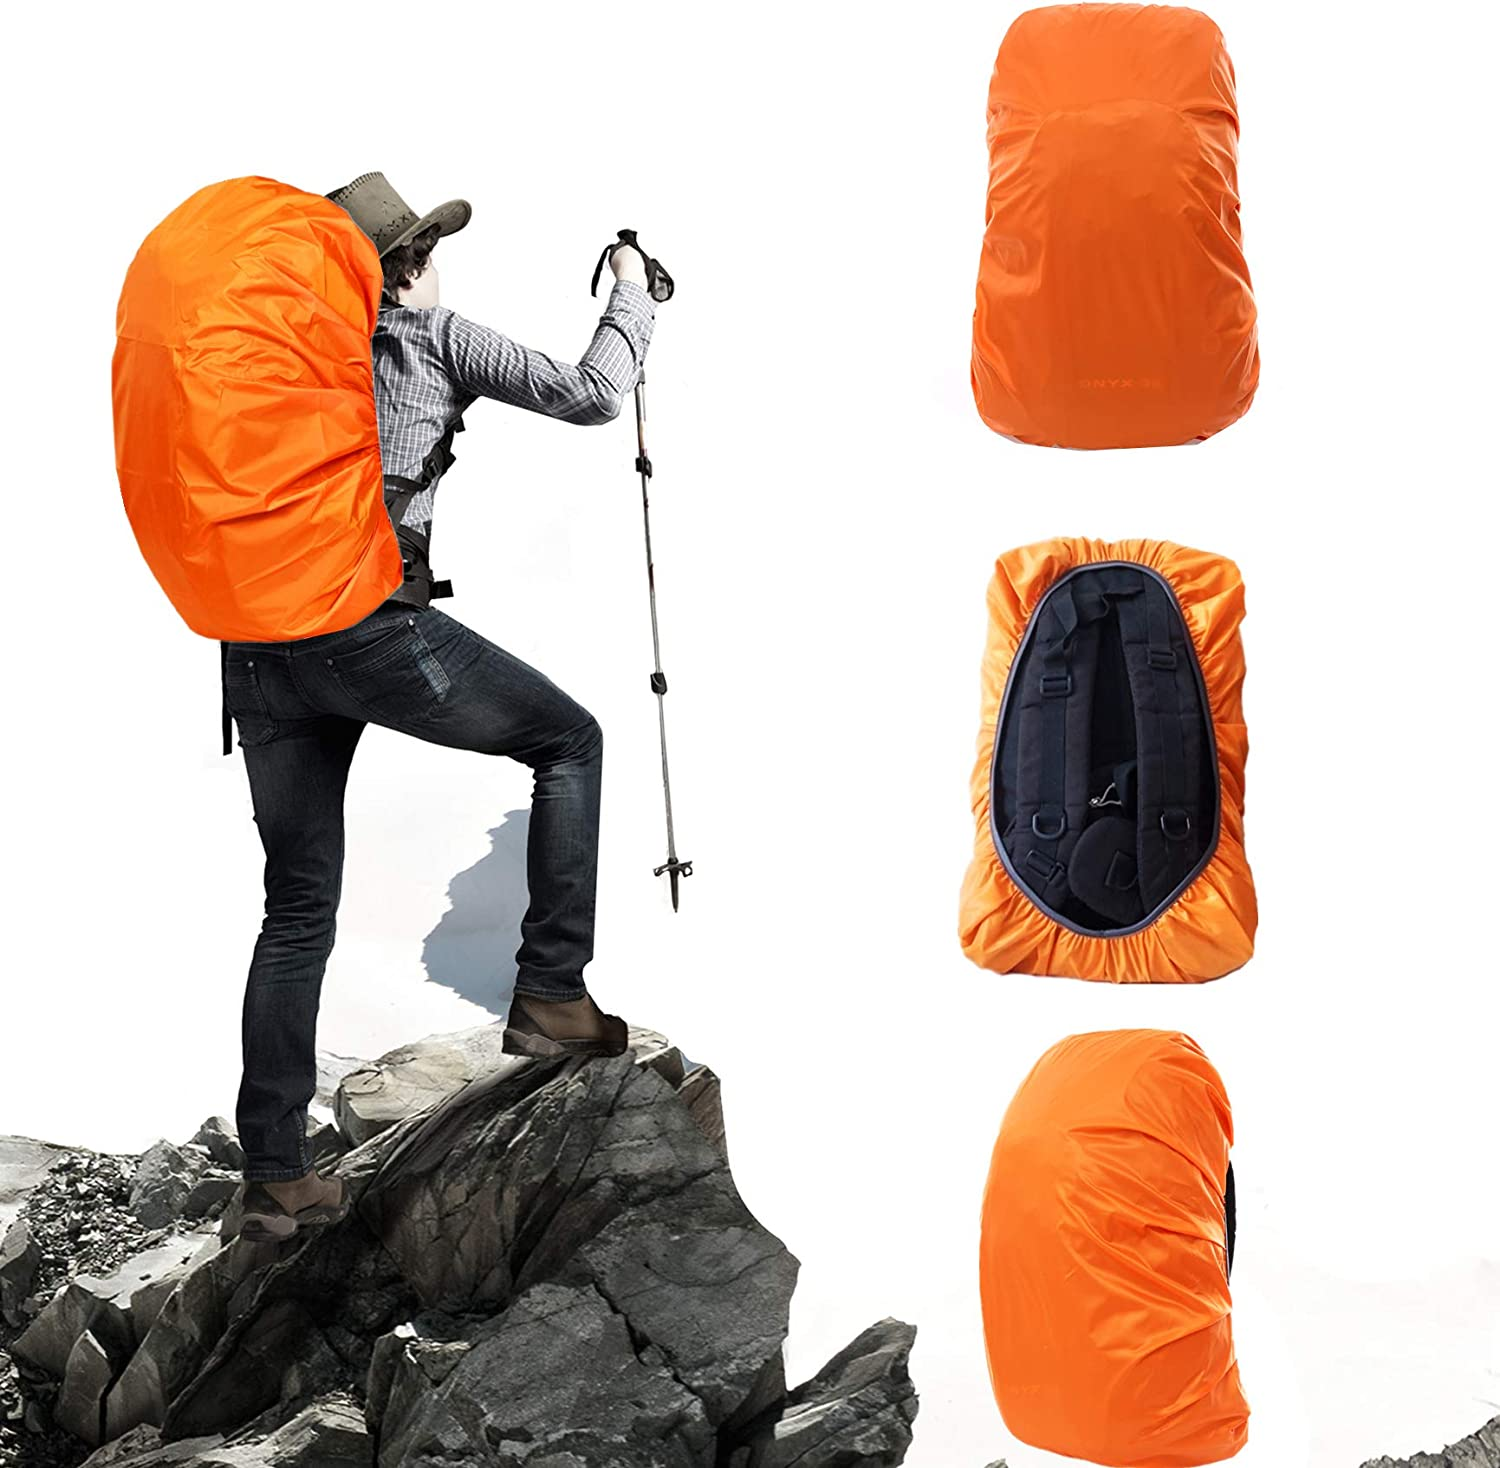 Yalkerw Waterproof Backpack Rain Cover (15-90L) for Hiking, Camping, Traveling, Cycling